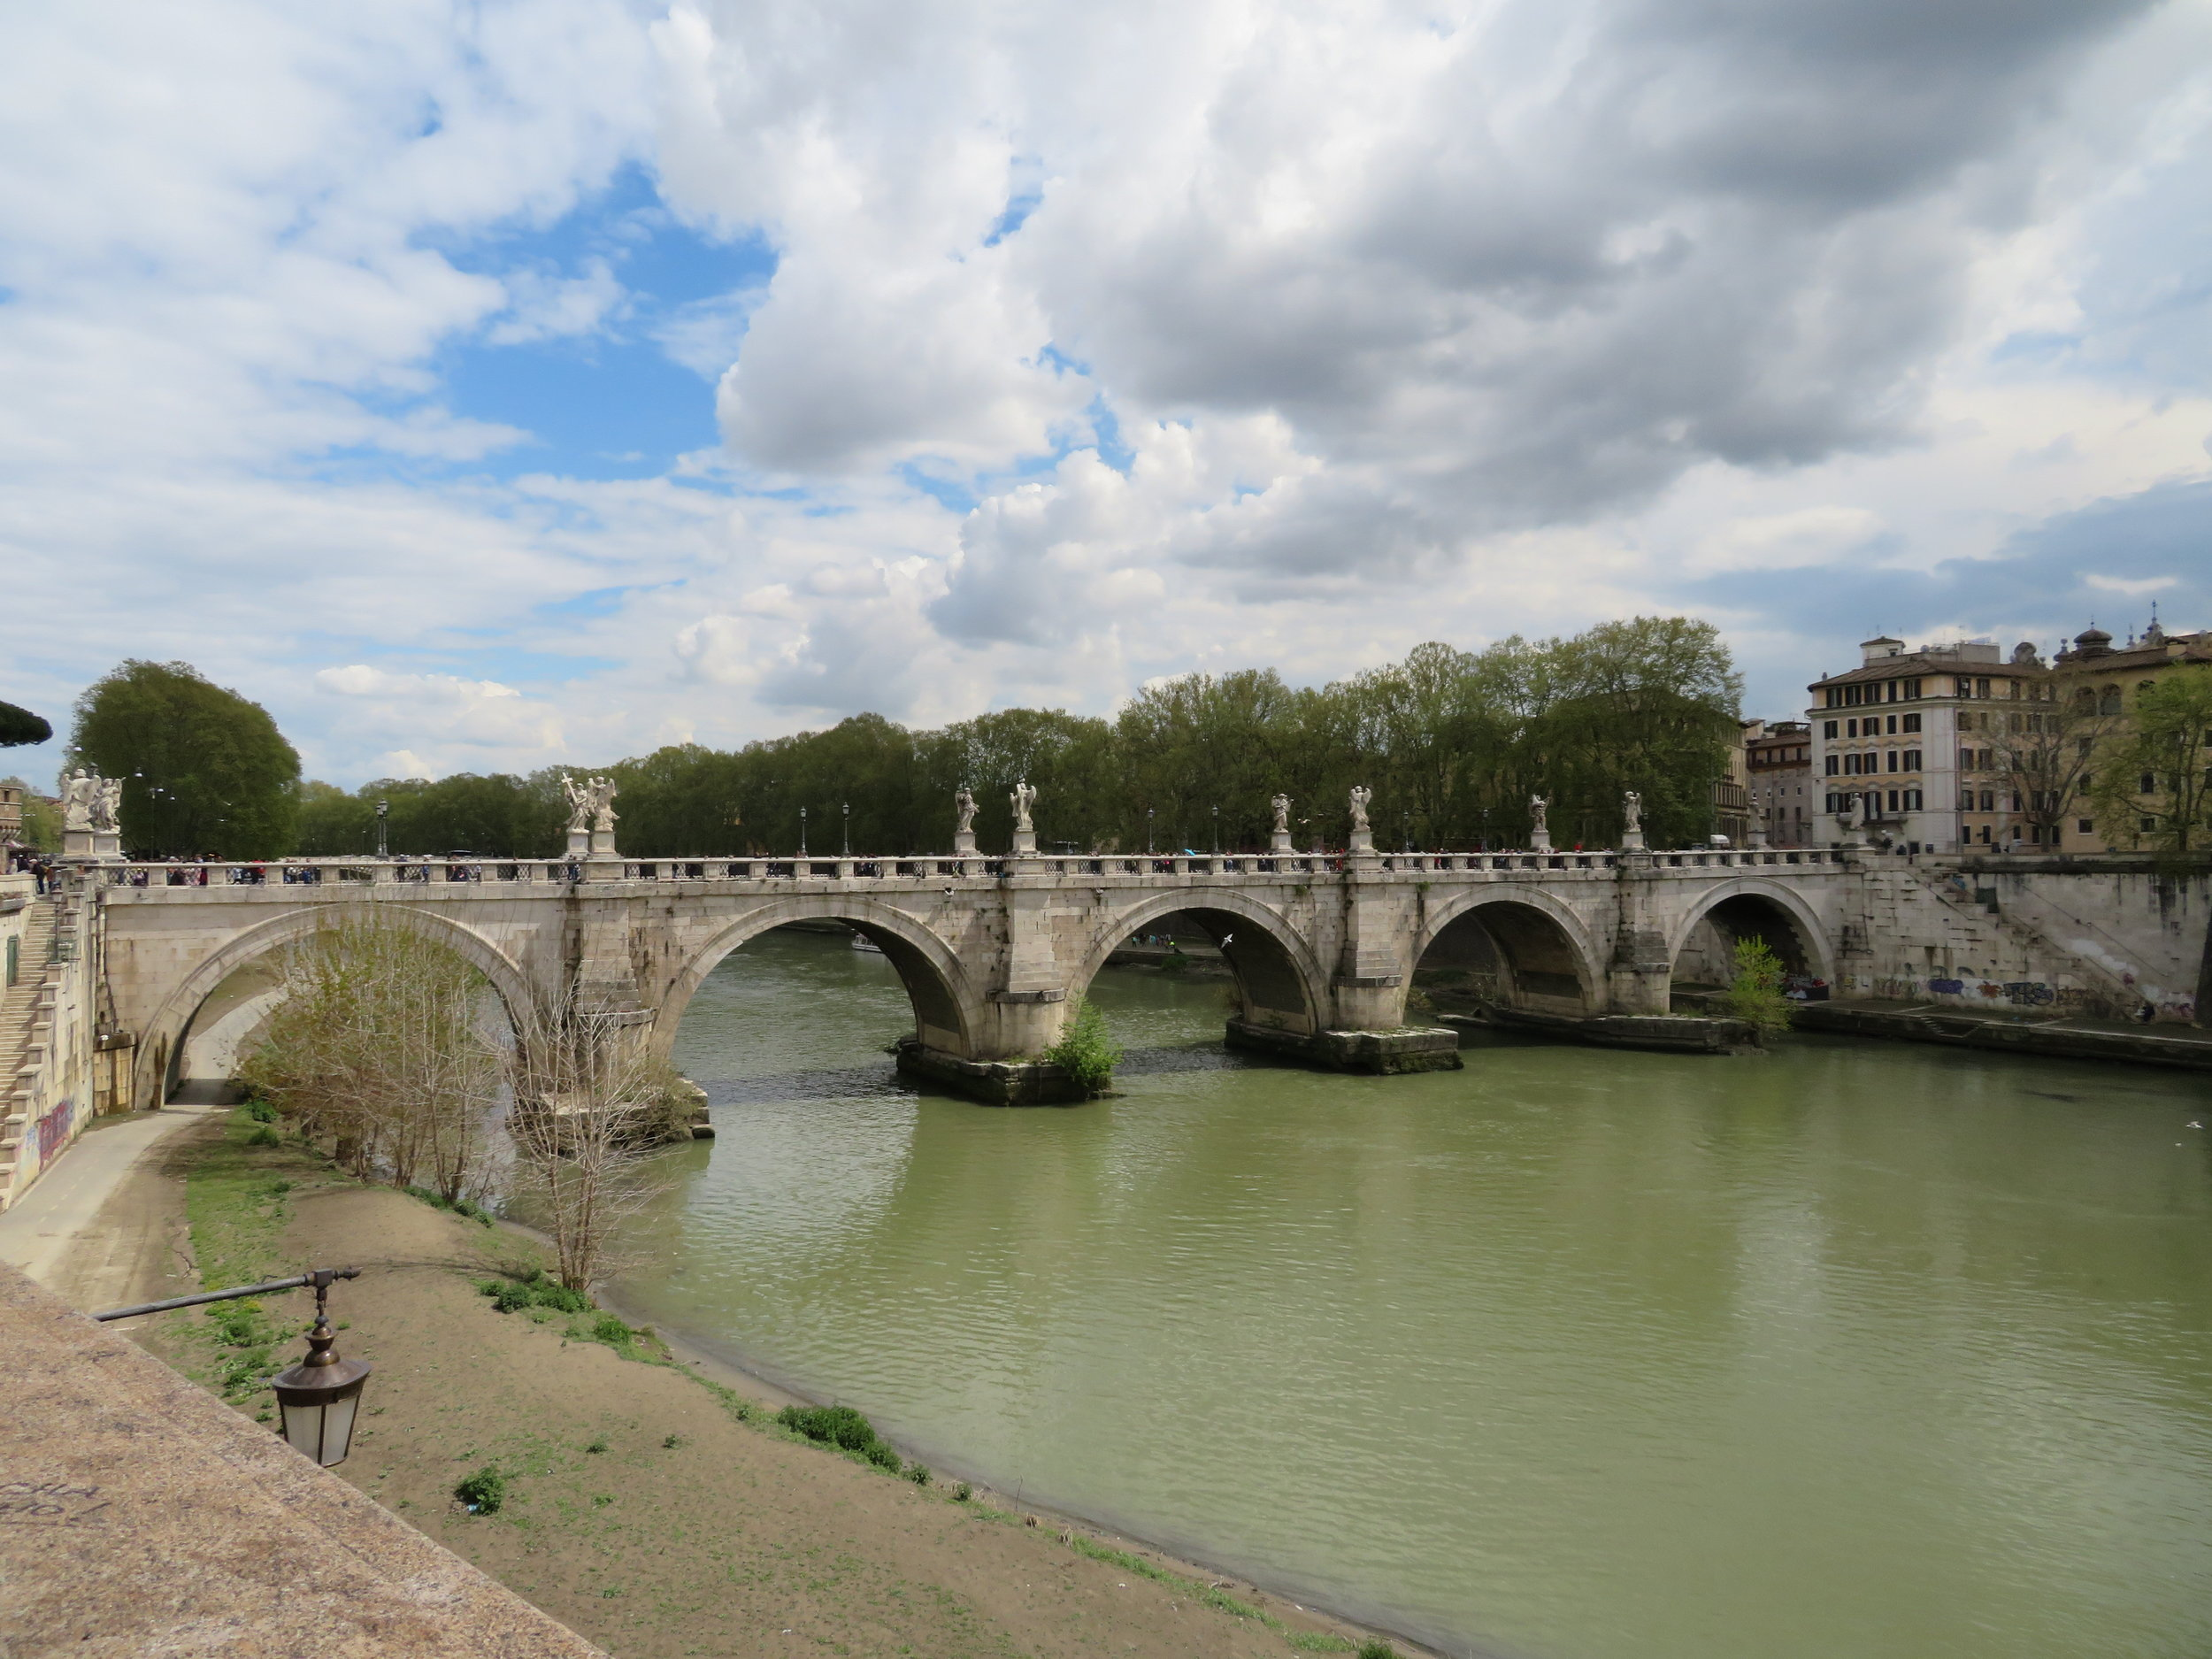 The Tiber River divides Rome from the Vatican City